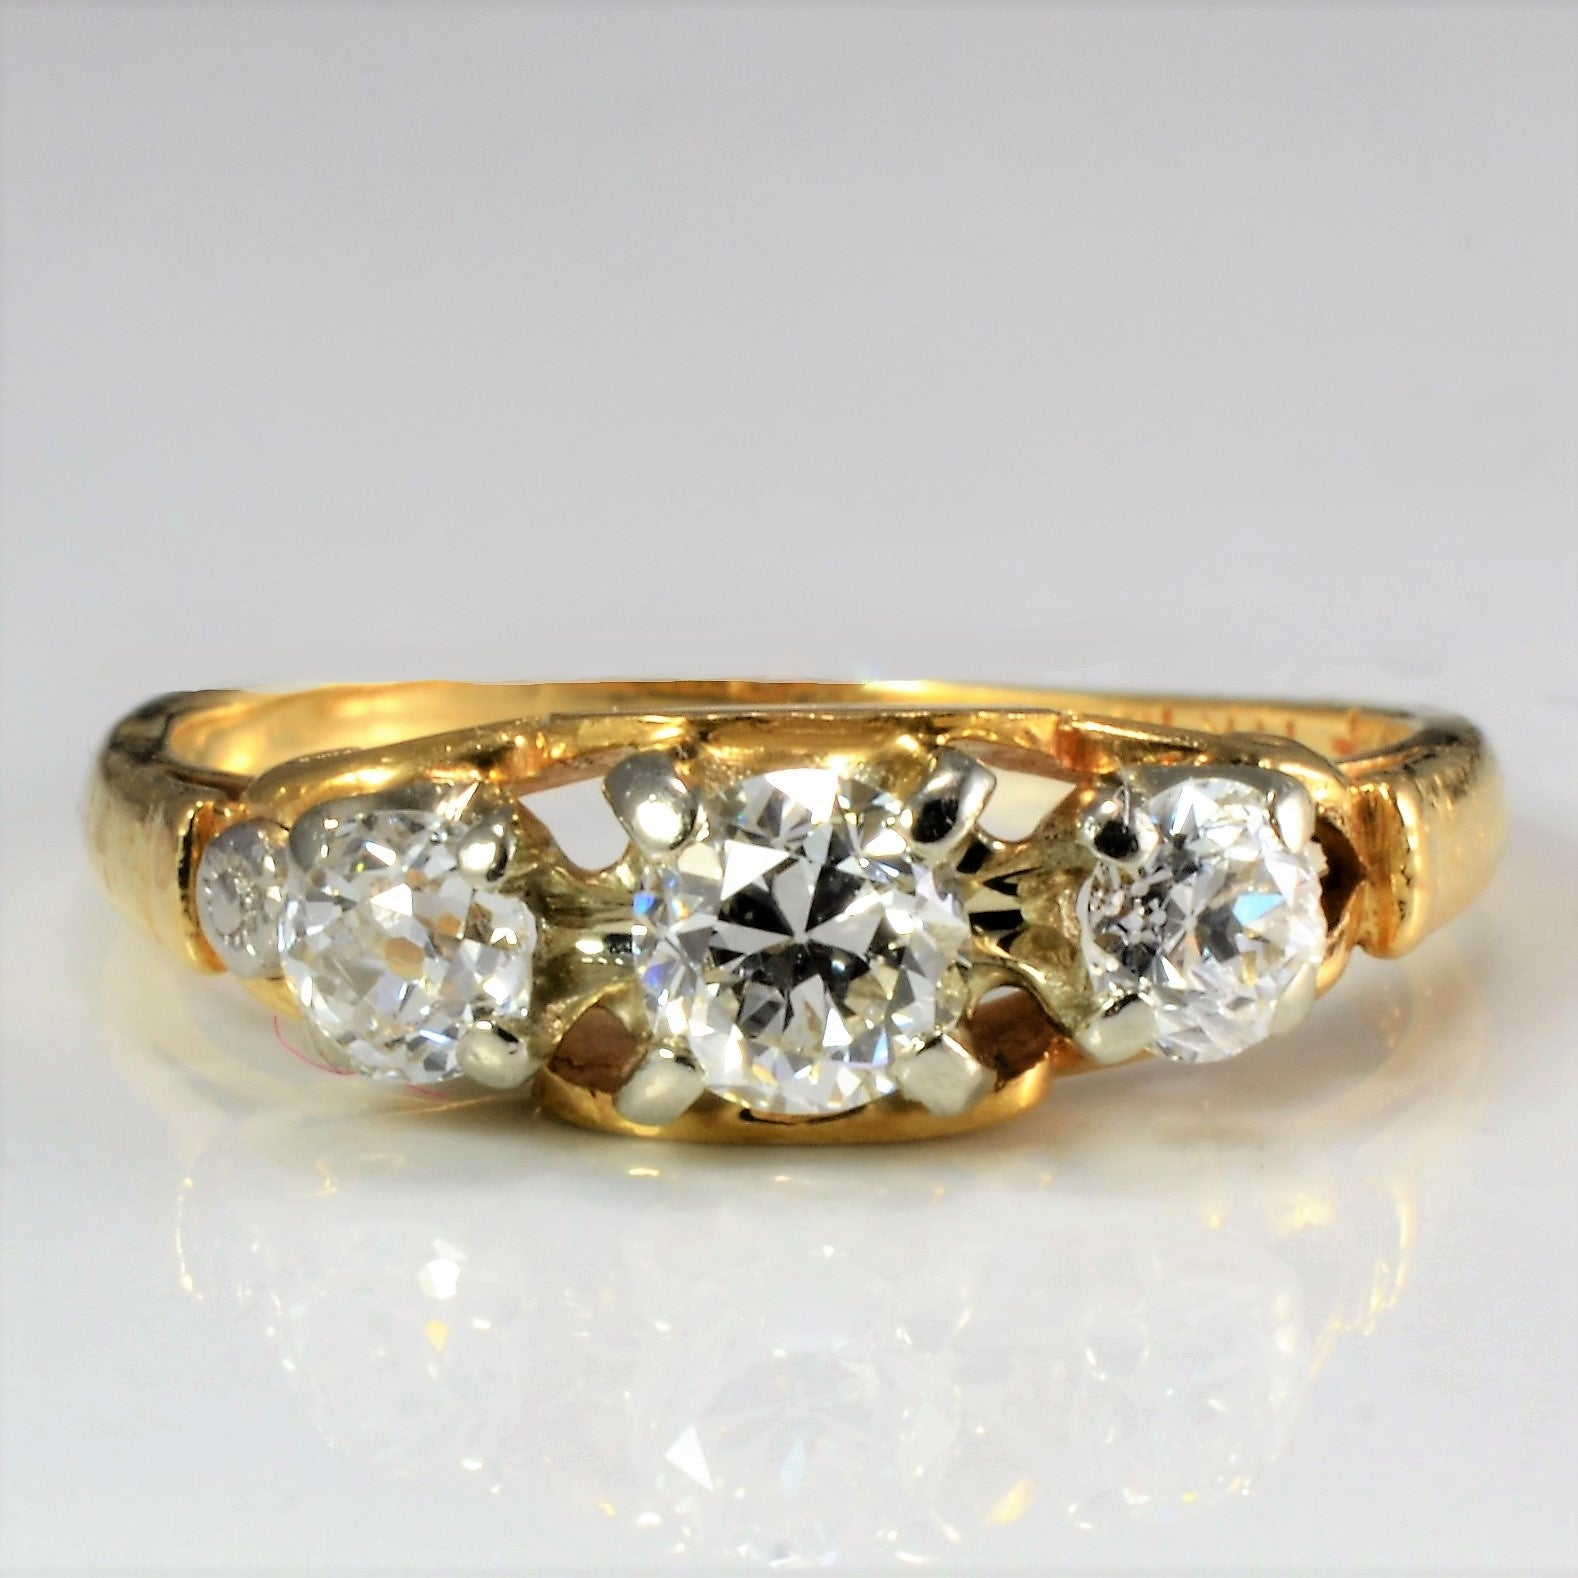 BIRKS Three Stone Diamond Ring | 0.60 ctw, SZ 5.75 |